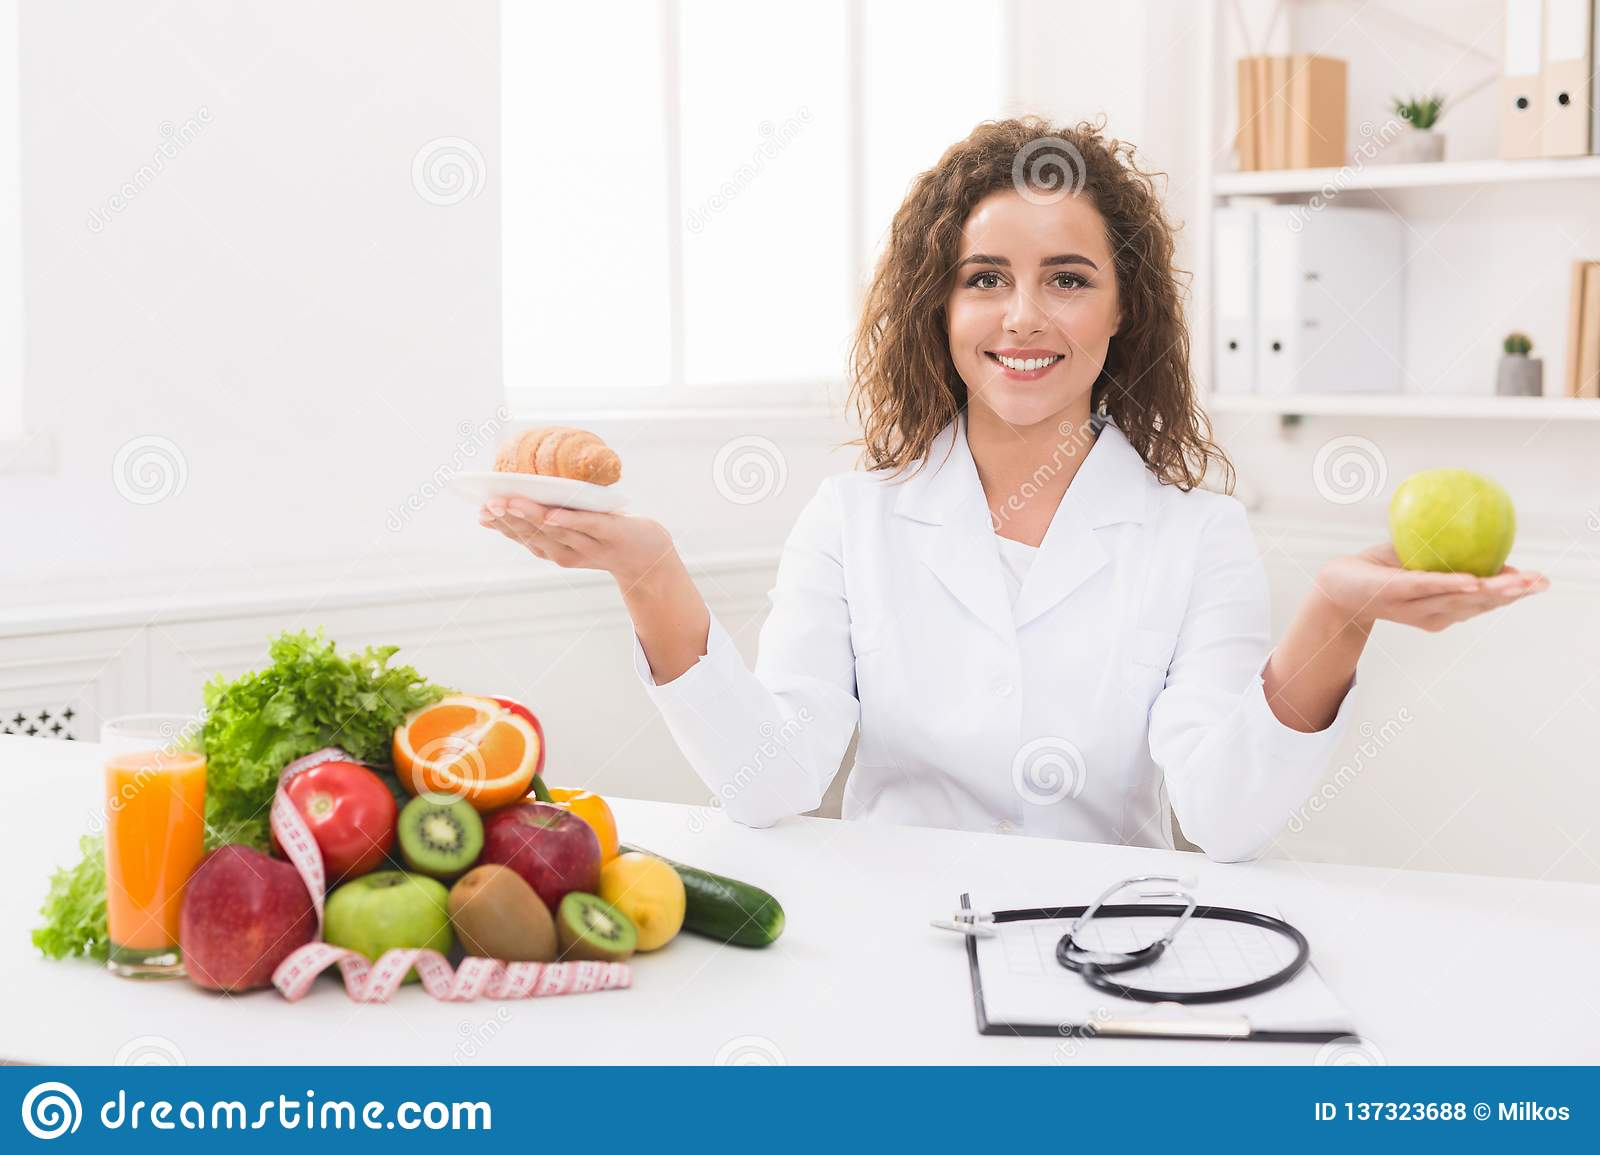 Woman nutritionist holding fruit and croissant in hands